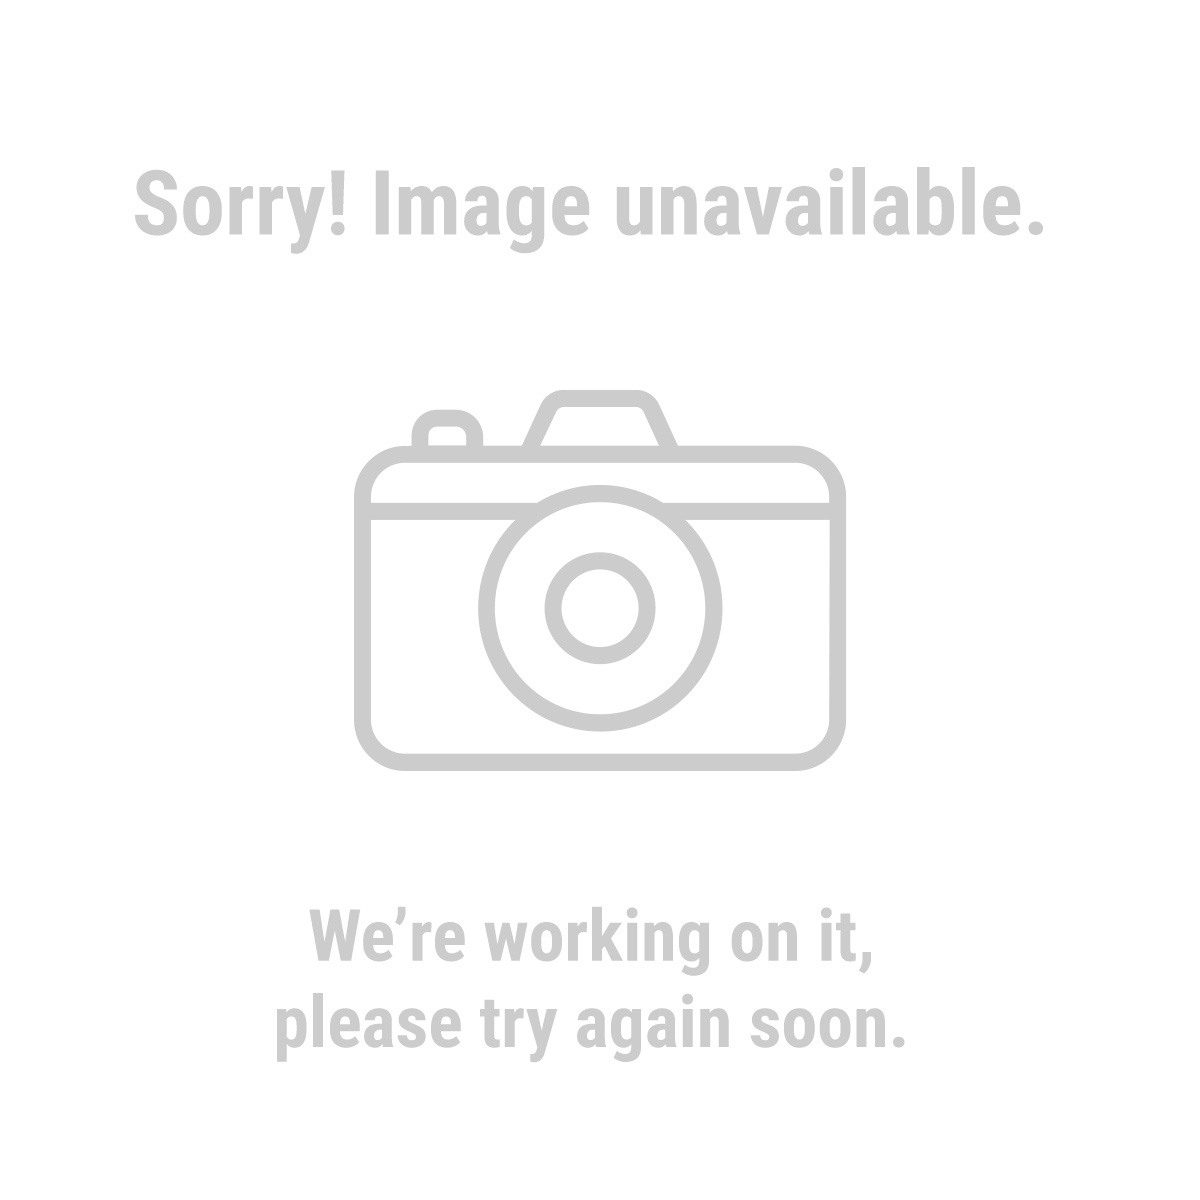 Portland Saw 68114 10 Piece Carbon Steel Hole Saw Set